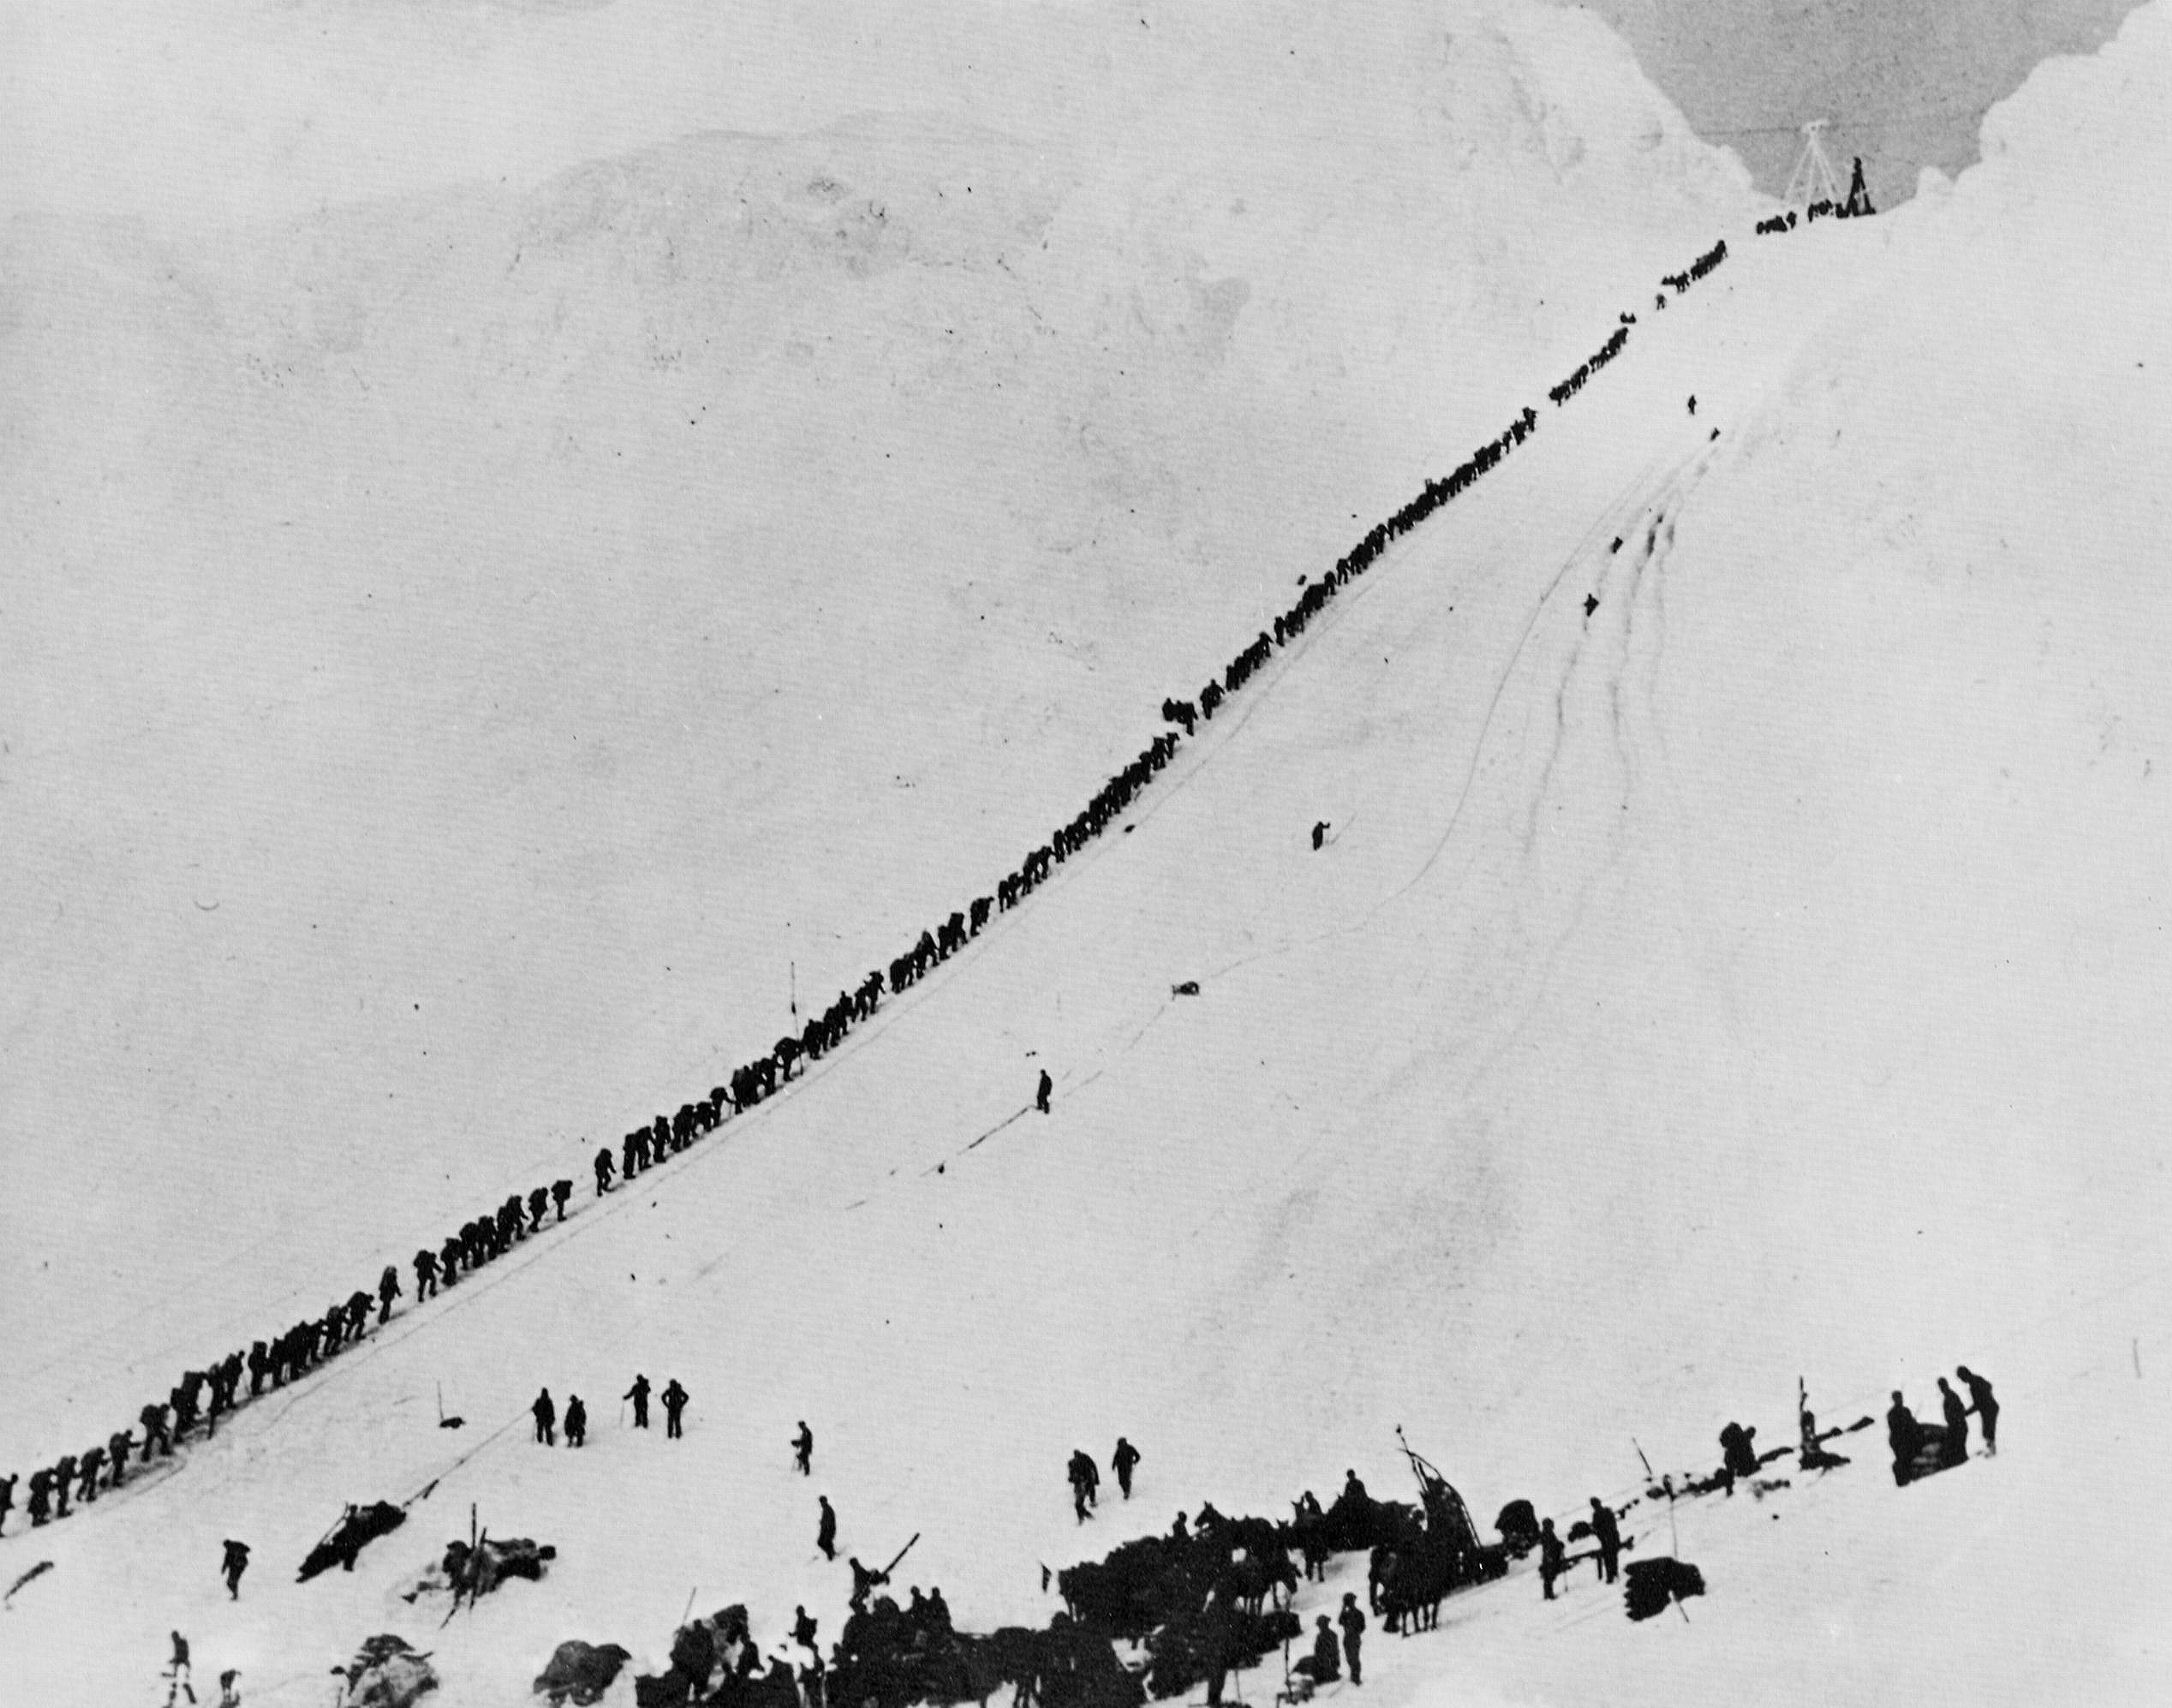 https://upload.wikimedia.org/wikipedia/commons/4/40/Miners_climb_Chilkoot.jpg